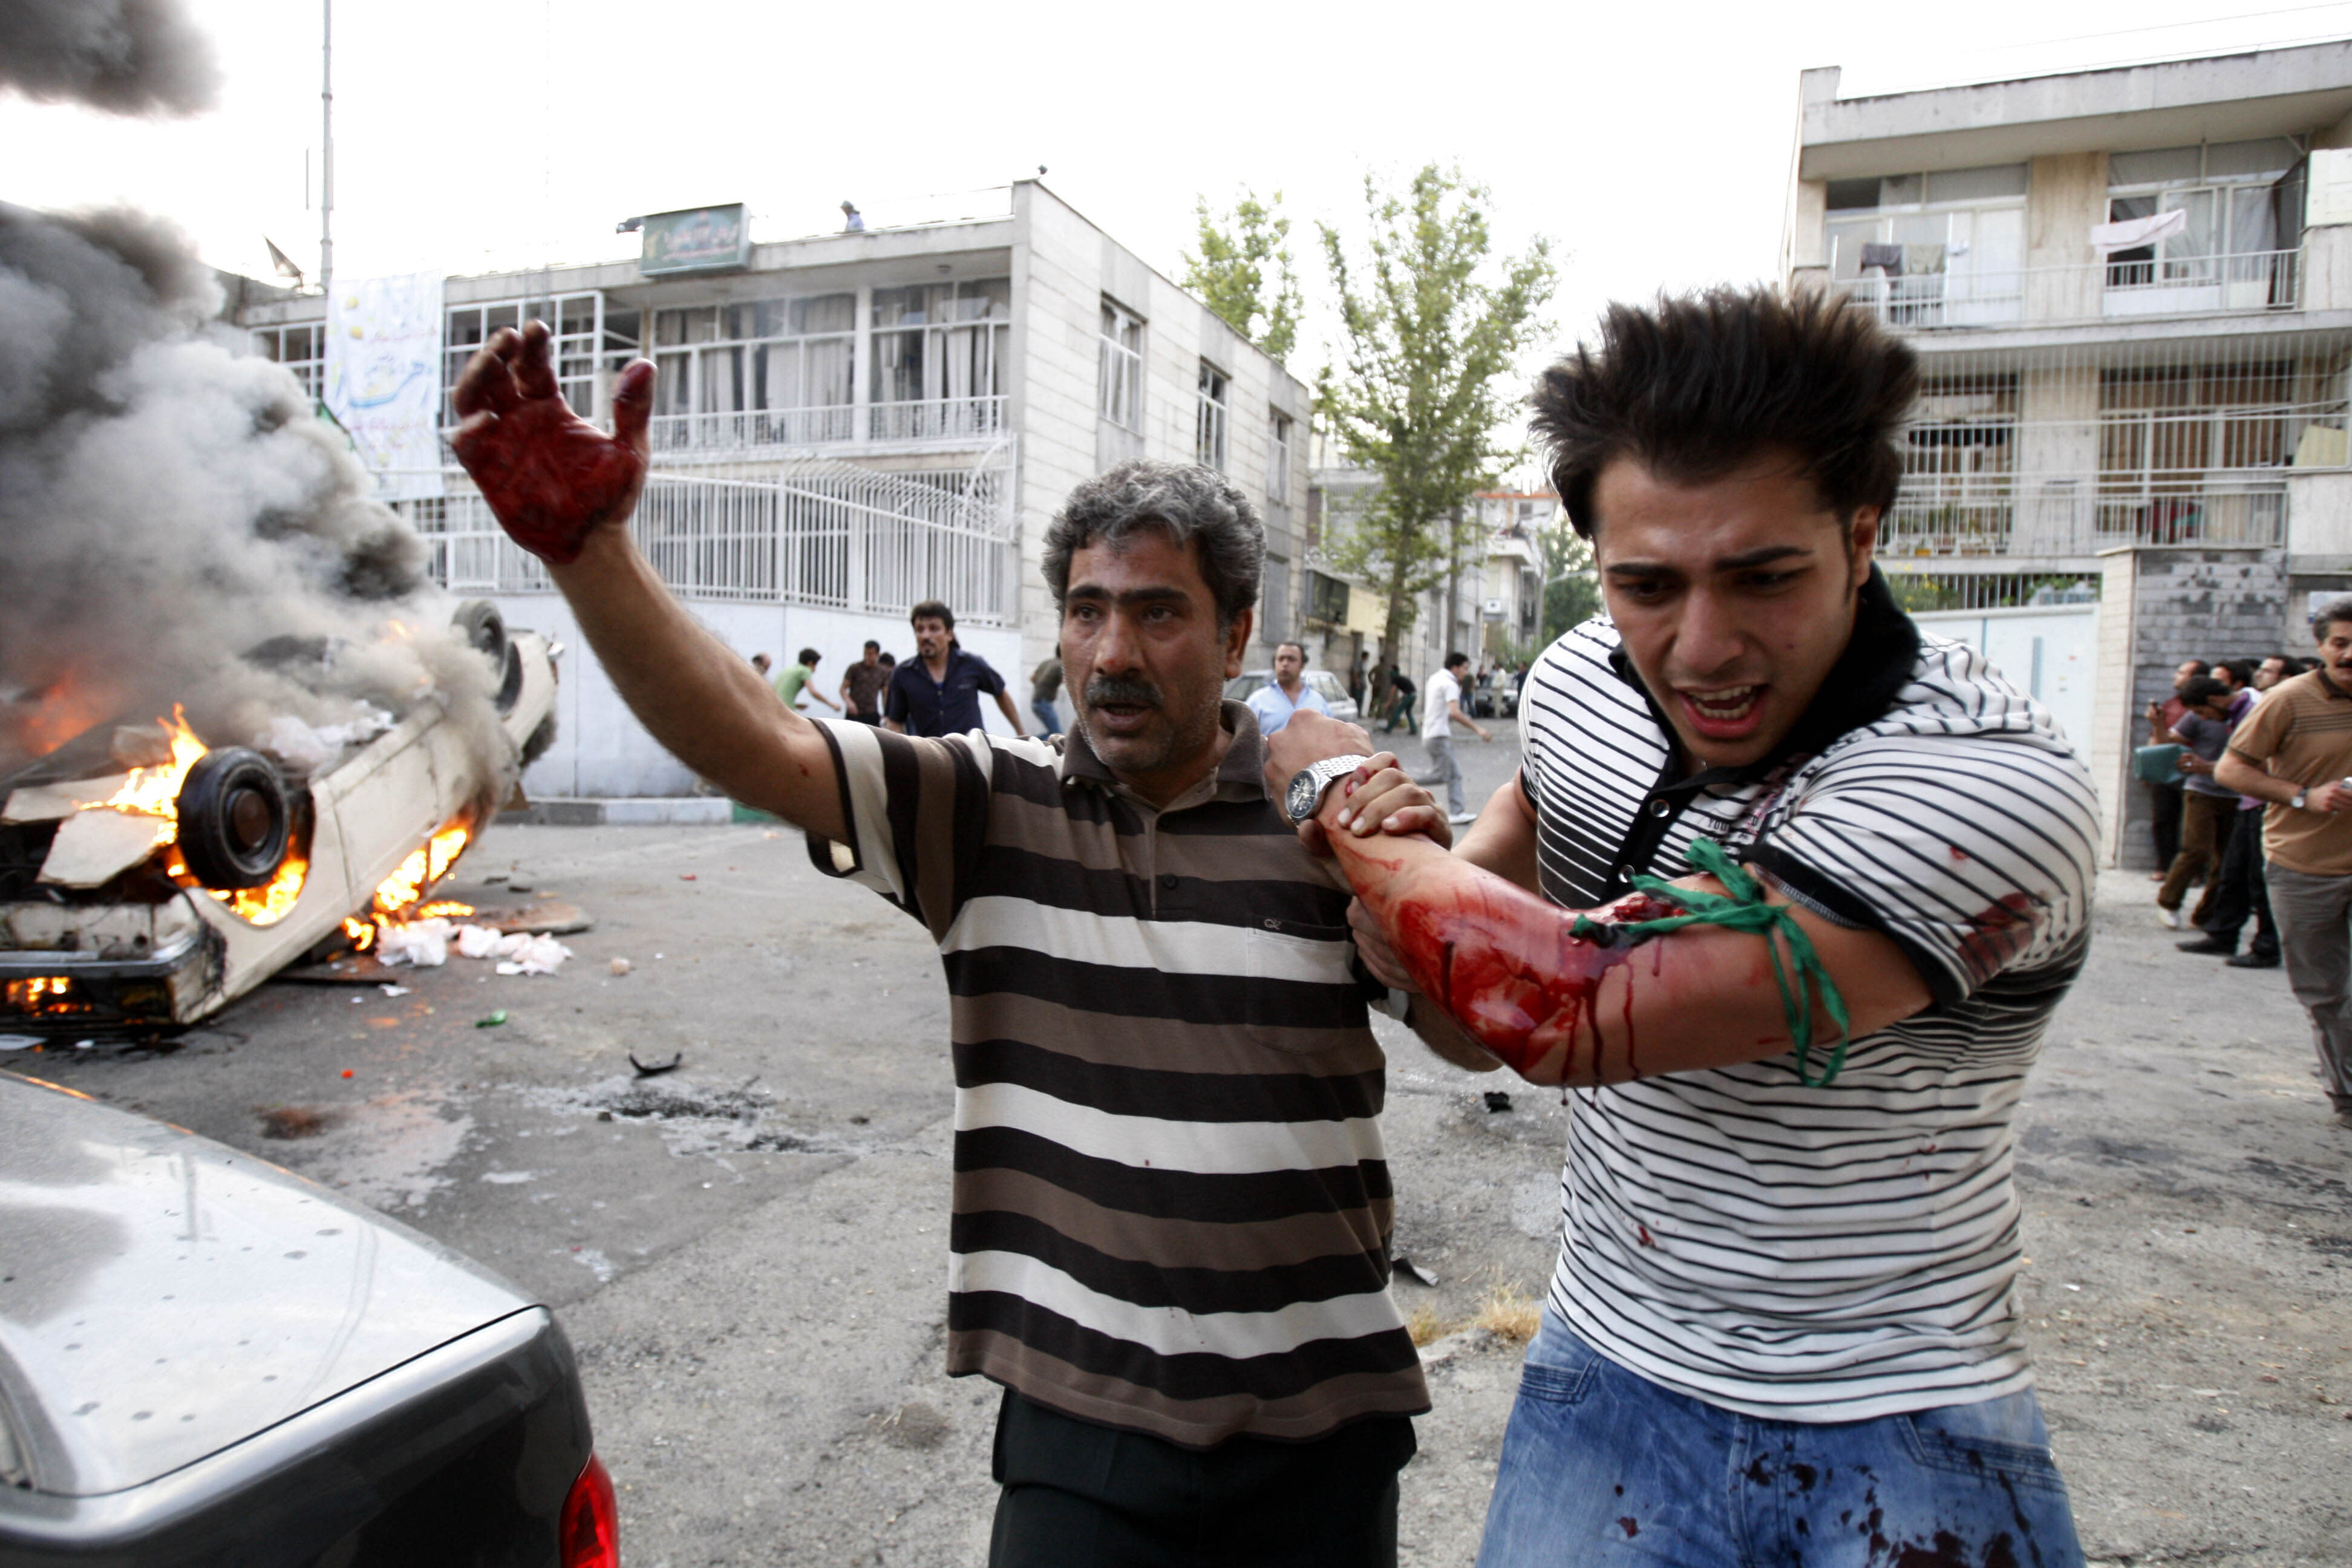 FILE - In this June 15, 2009 file photo, a protester allegedly injured by gunfire from a pro-government militia is helped by another protester near a rally supporting leading opposition presidential candidate Mir Hossein Mousavi in Tehran, Iran. The demonstrations that erupted after Iran admitted to accidentally shooting down a Ukrainian jetliner early Wednesday, Jan. 8, 2020, during a tense standoff with the United States, are the latest of several waves of protest going back to the 1979 Islamic Revolution — all of which have been violently suppressed. (AP photo/Vahid Salemi, File)